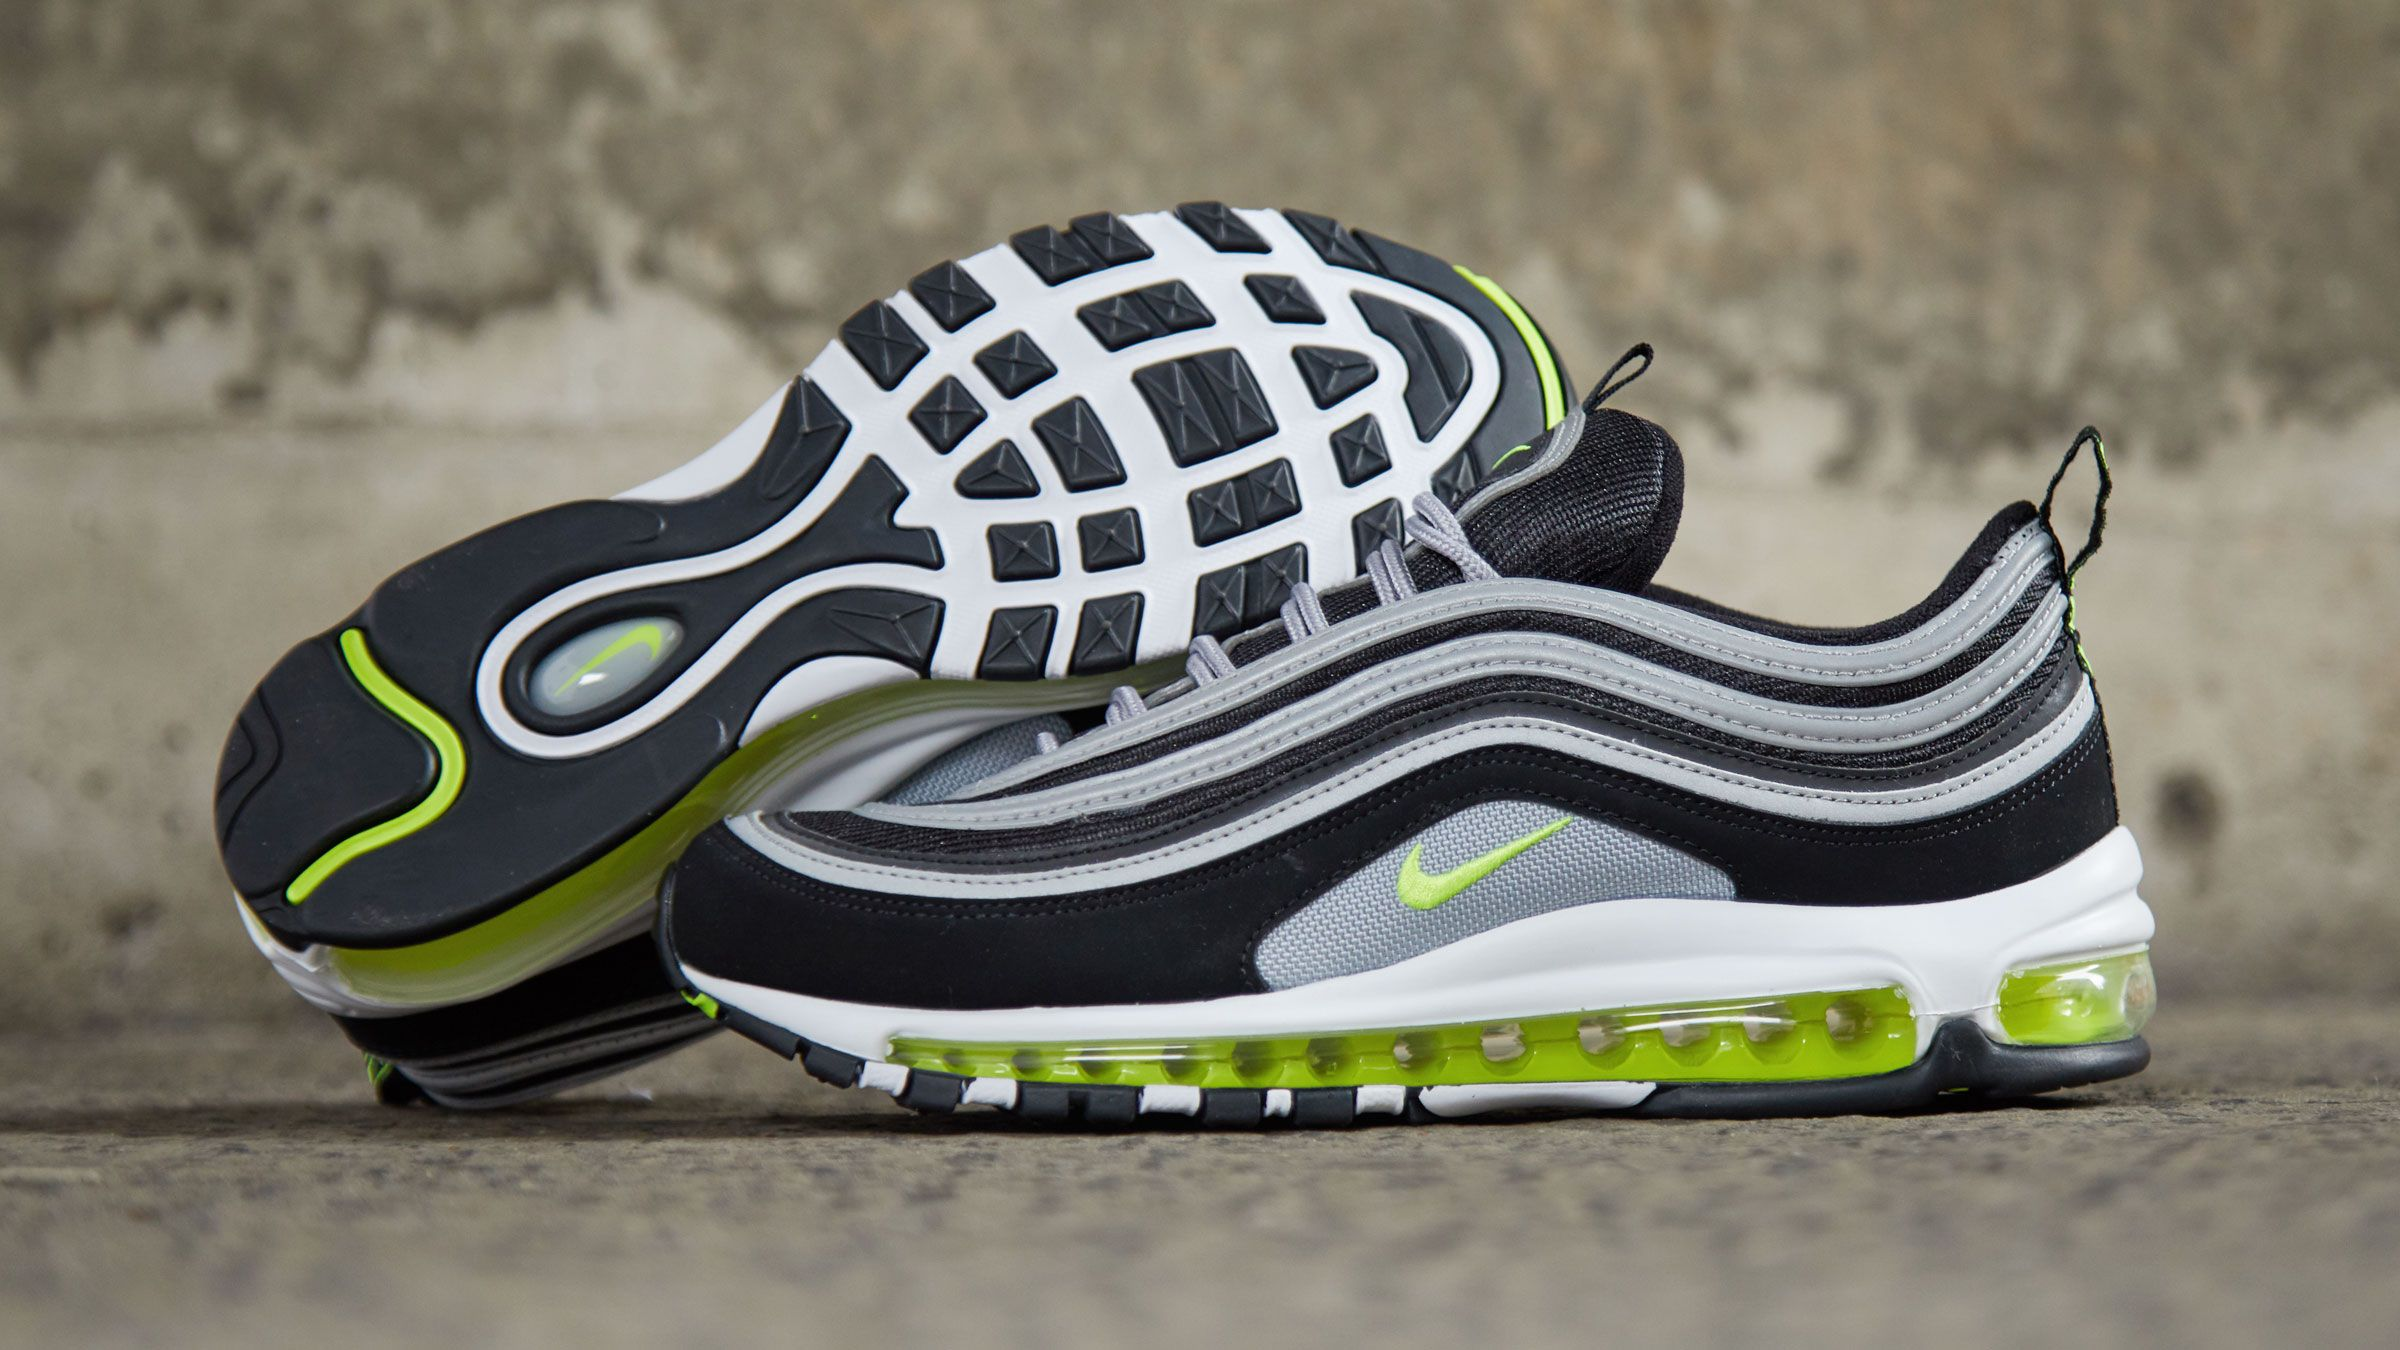 save off 30a2e 09d47 Nike Air Max 97 Japan OG (Black, Volt & Metallic Silver ...